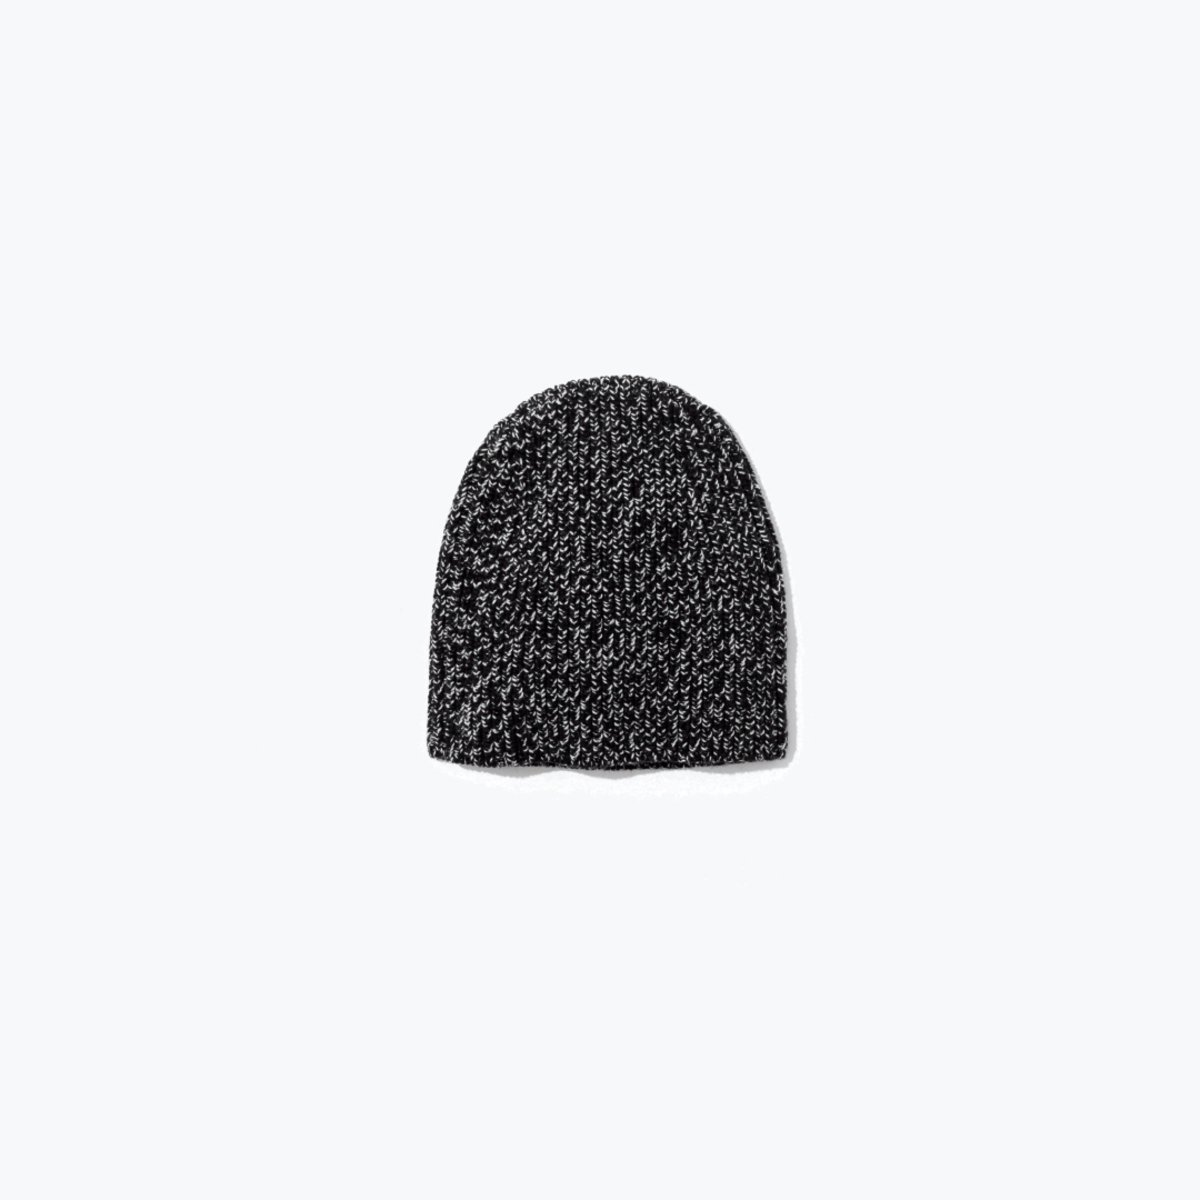 The Mini Chunky Knit Beanie –  28 58c769b07938